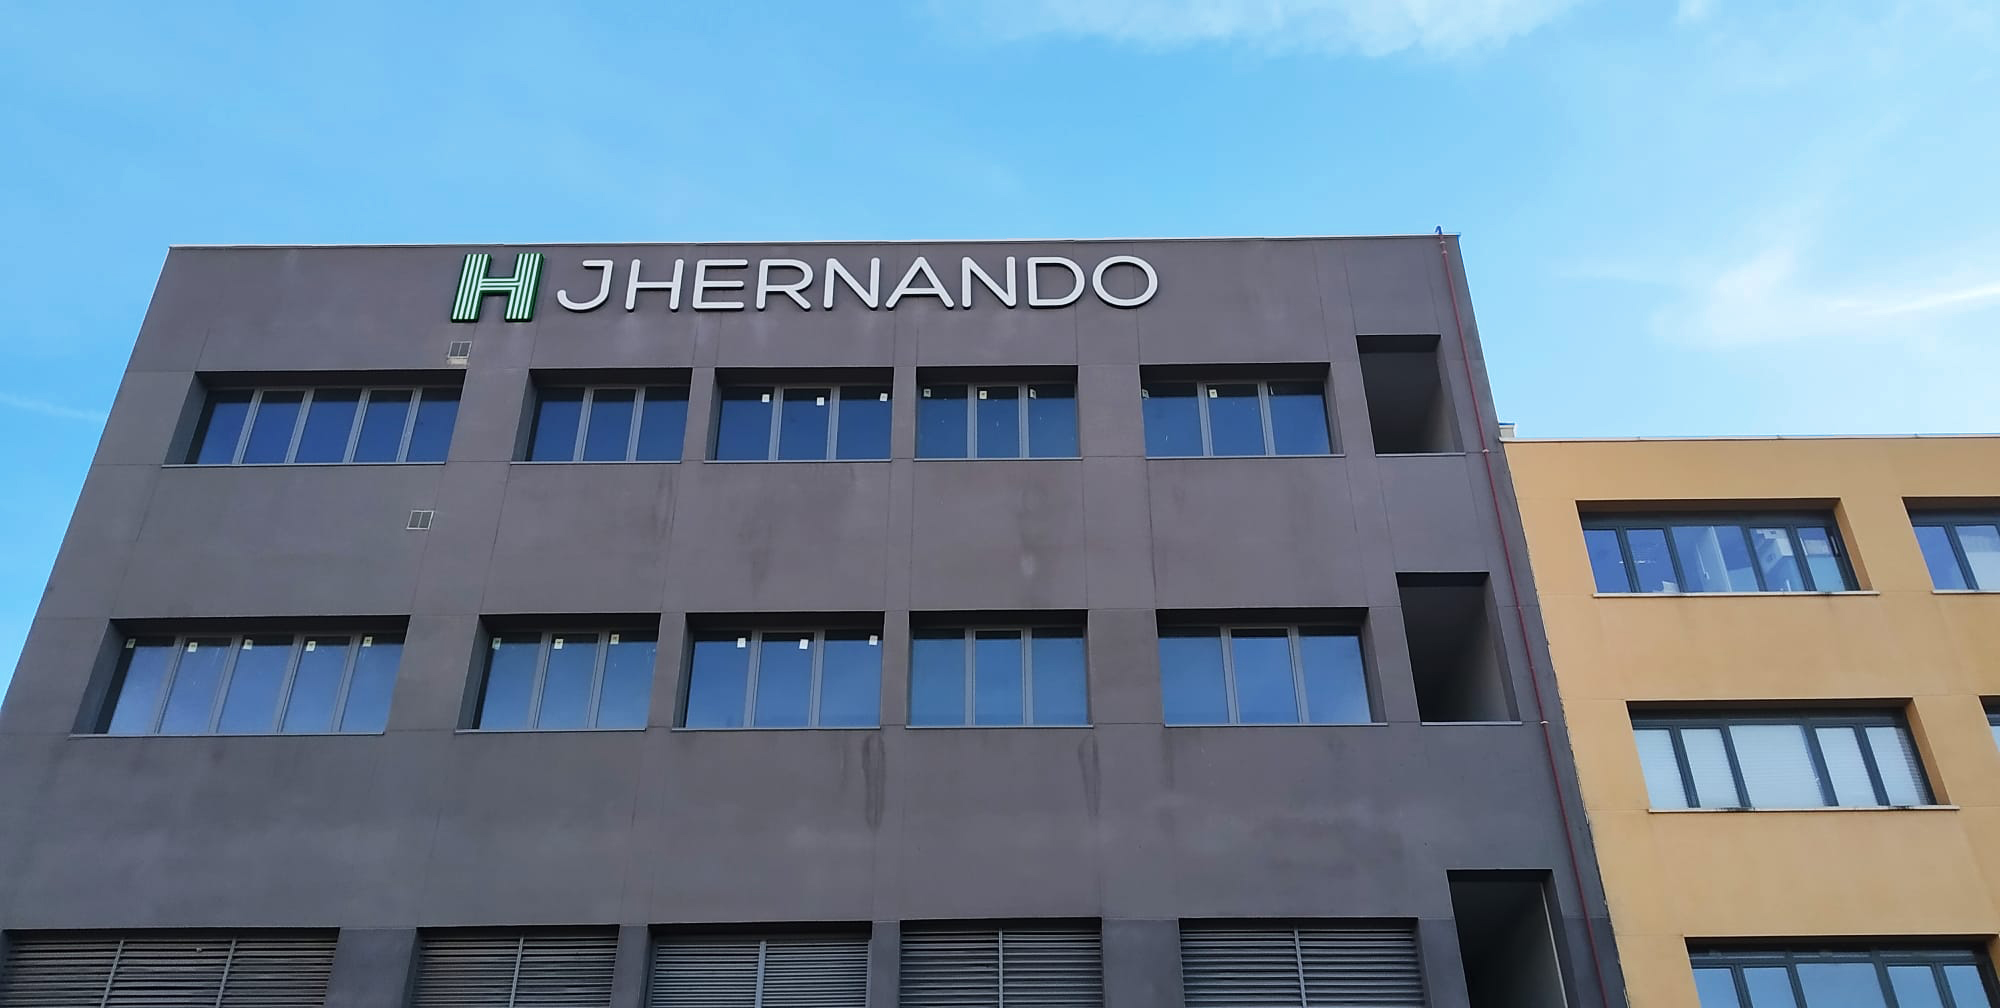 JHernando will open its second factory in Madrid